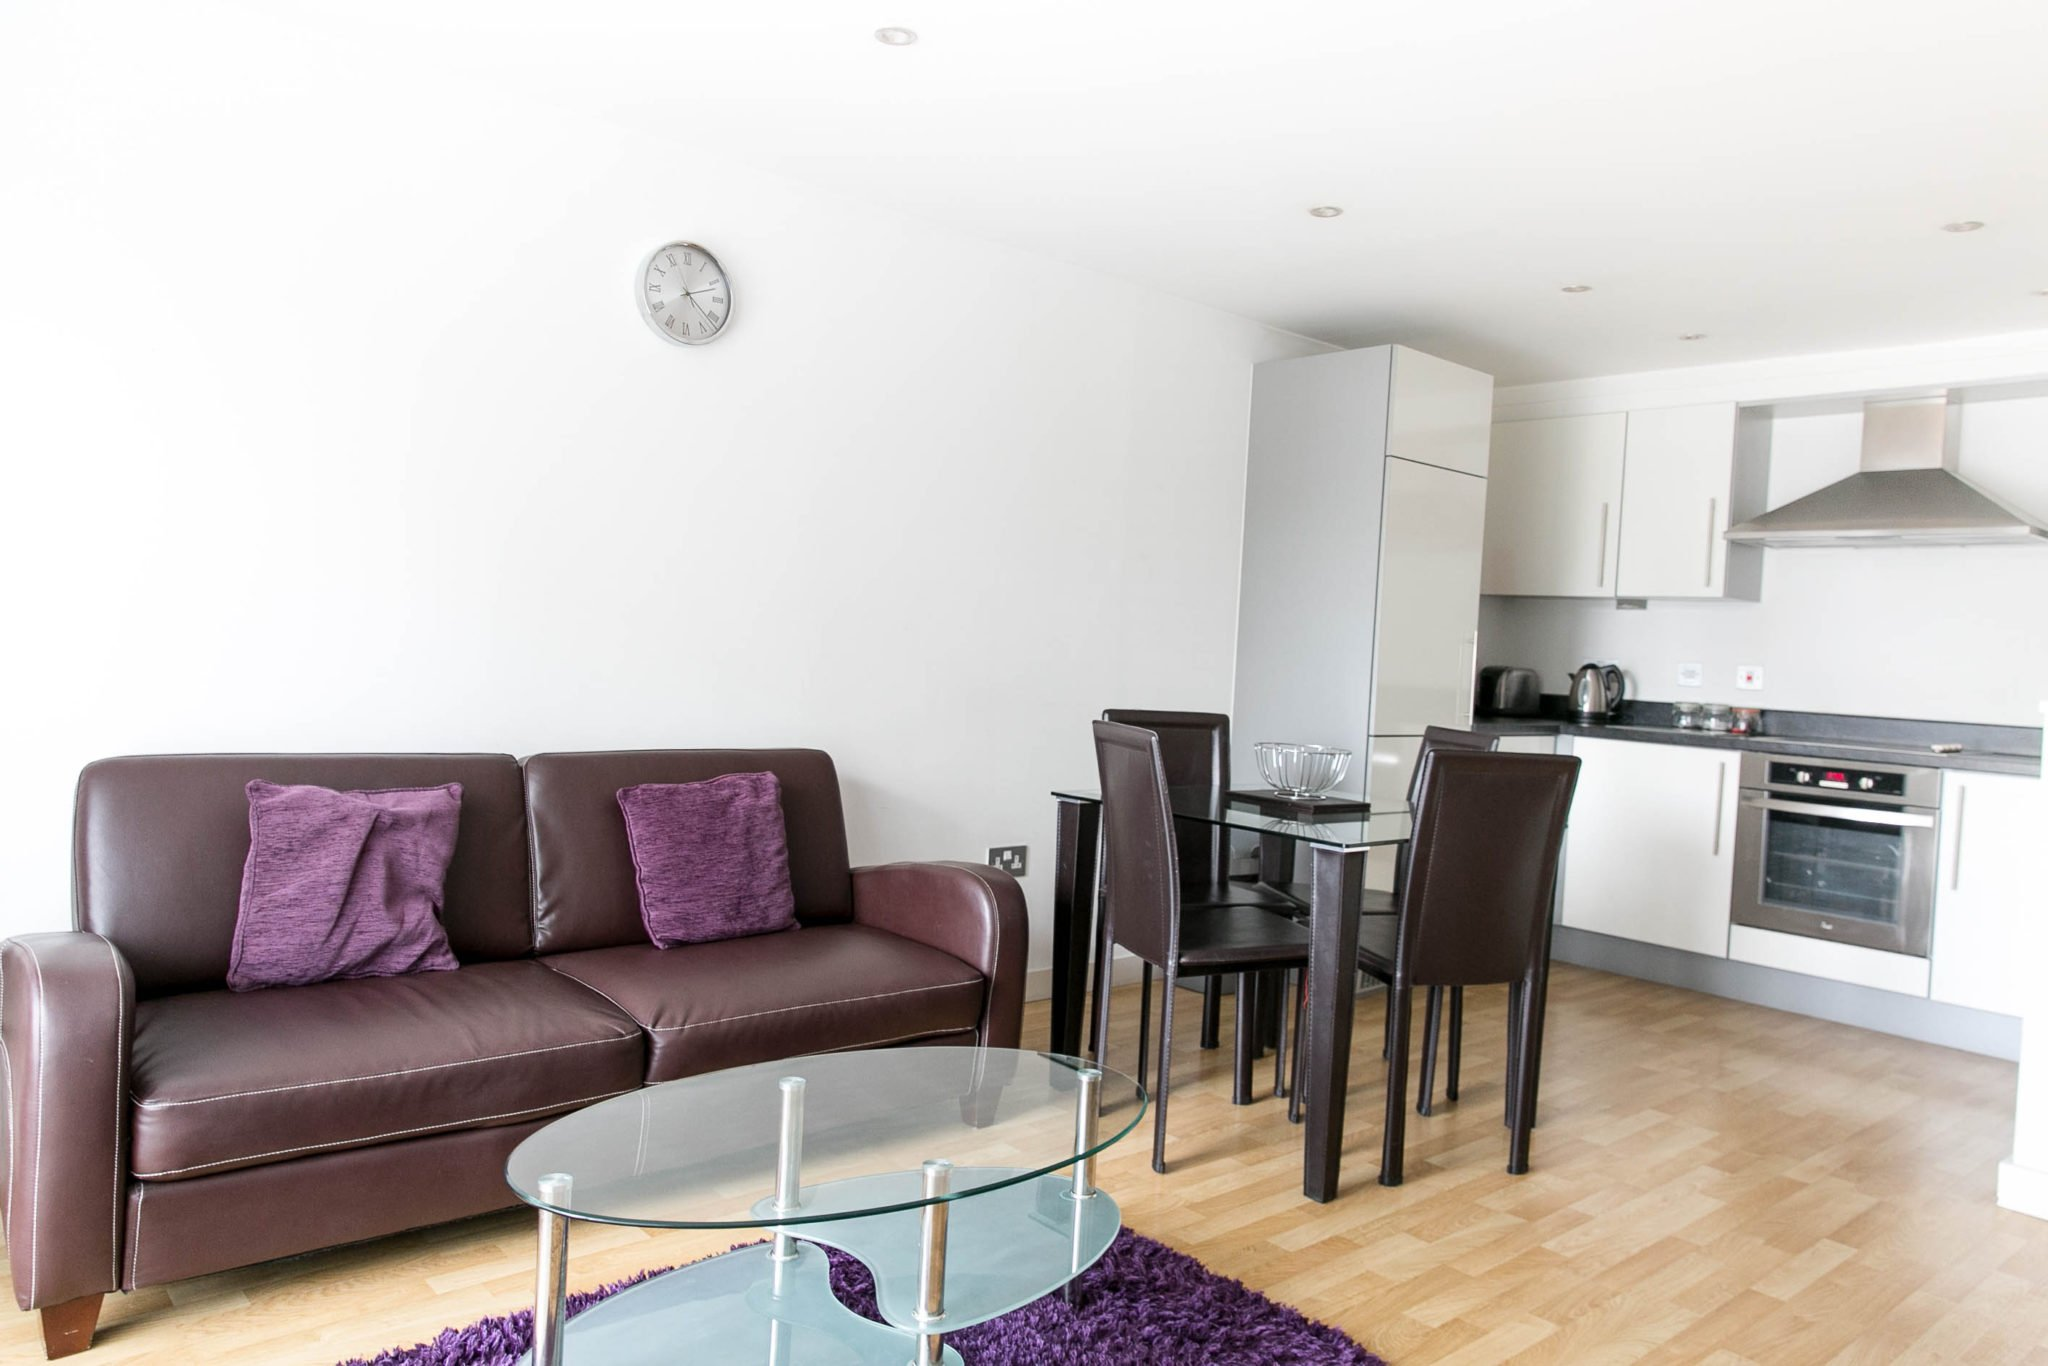 Camberley-Corporate-Accommodation-Surrey-|-Self-catering-Apartments-Camberley-UK-|-Group-Accommodation-Surrey-|-Short-Lets-Camberley-|-LOW-RATES---BOOK-NOW---Urban-Stay